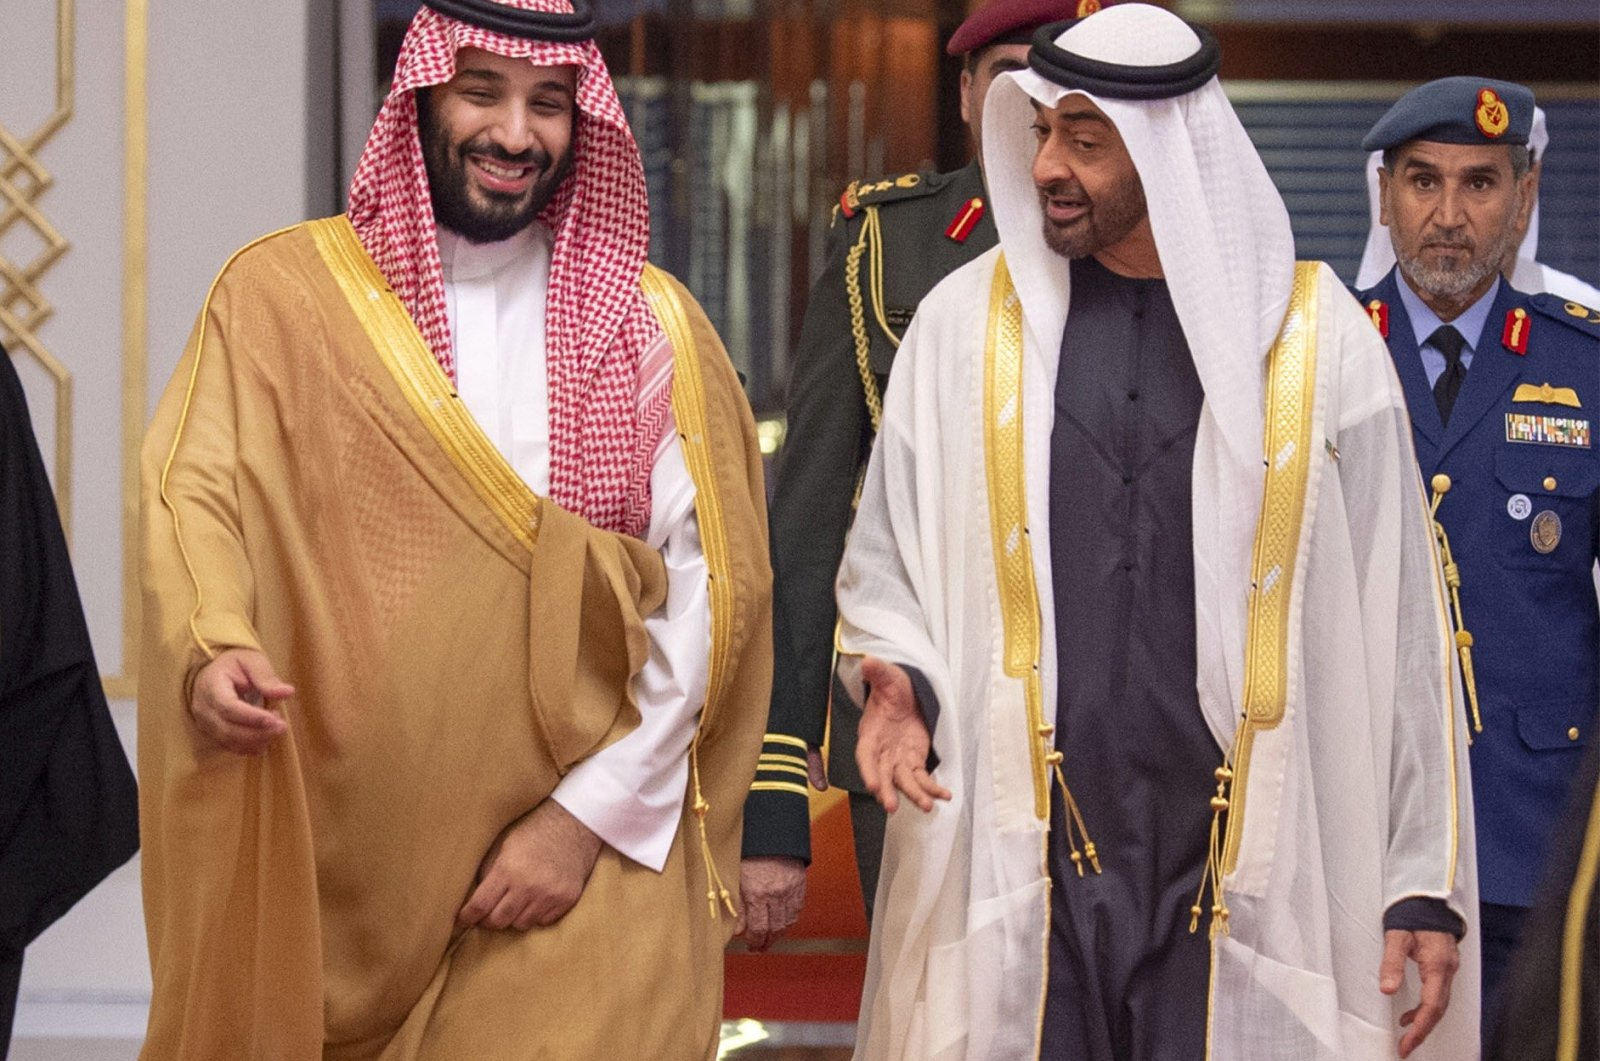 A handout picture provided by the Saudi Royal Palace shows Saudi Crown Prince Mohammed bin Salman (L) being received by Abu Dhabi's Crown Prince and Deputy Supreme Commander of the UAE Armed Forces, Sheikh Mohamed bin Zayed Al Nahyan, Abu Dhabi, Nov. 22, 2018. (AFP Photo)